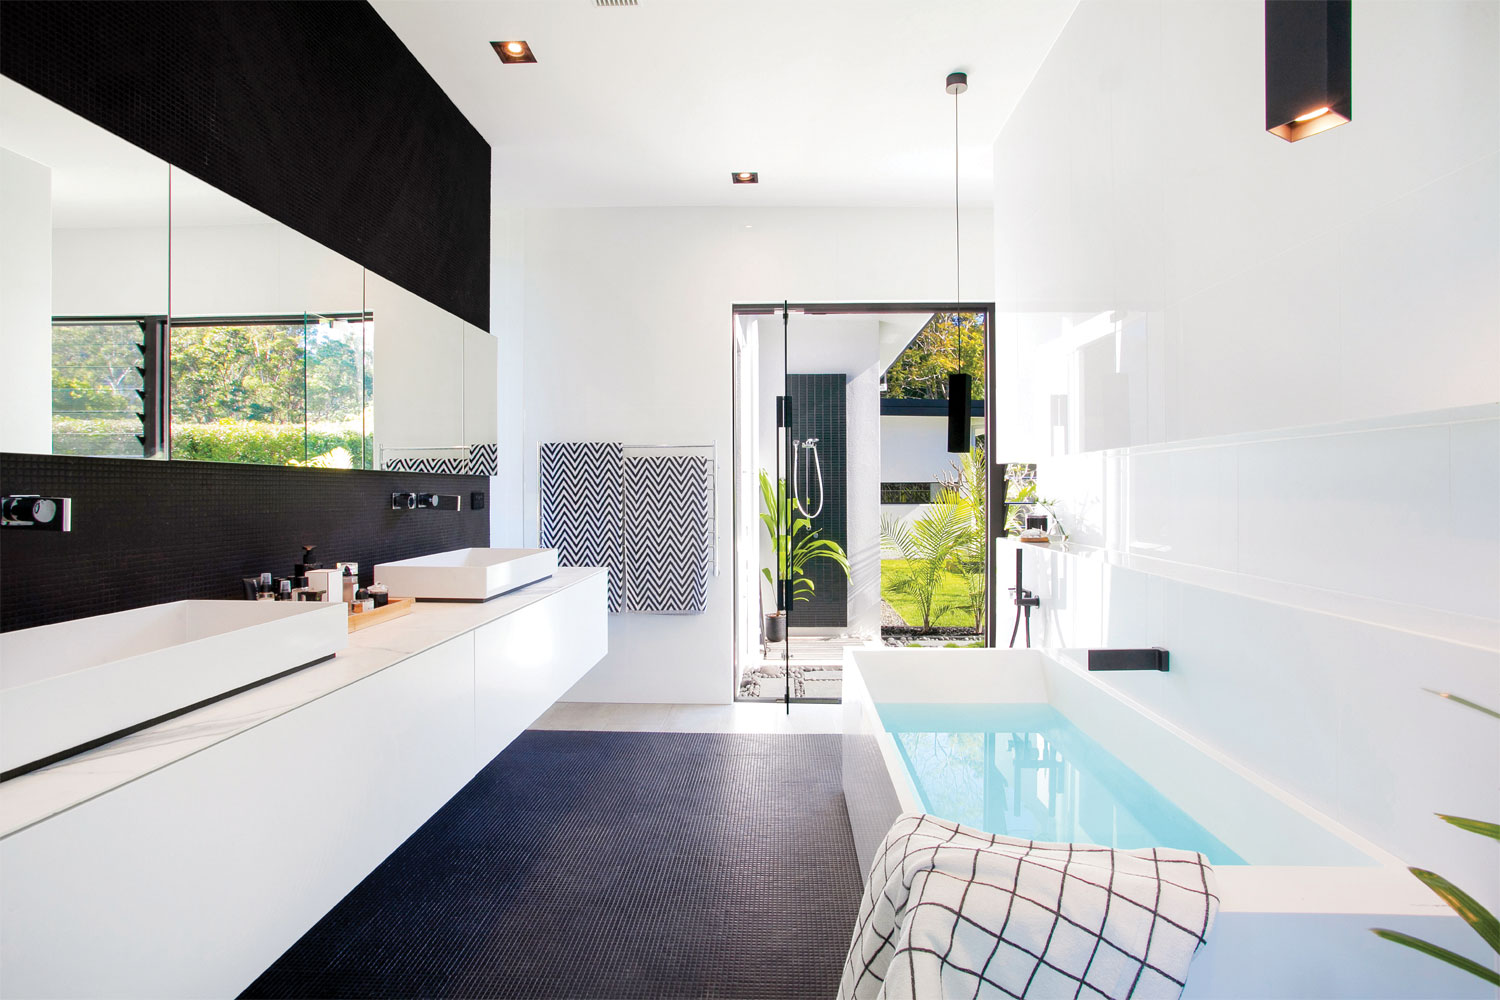 Bathing Bliss: 6 inspirational bathroom designs - Completehome